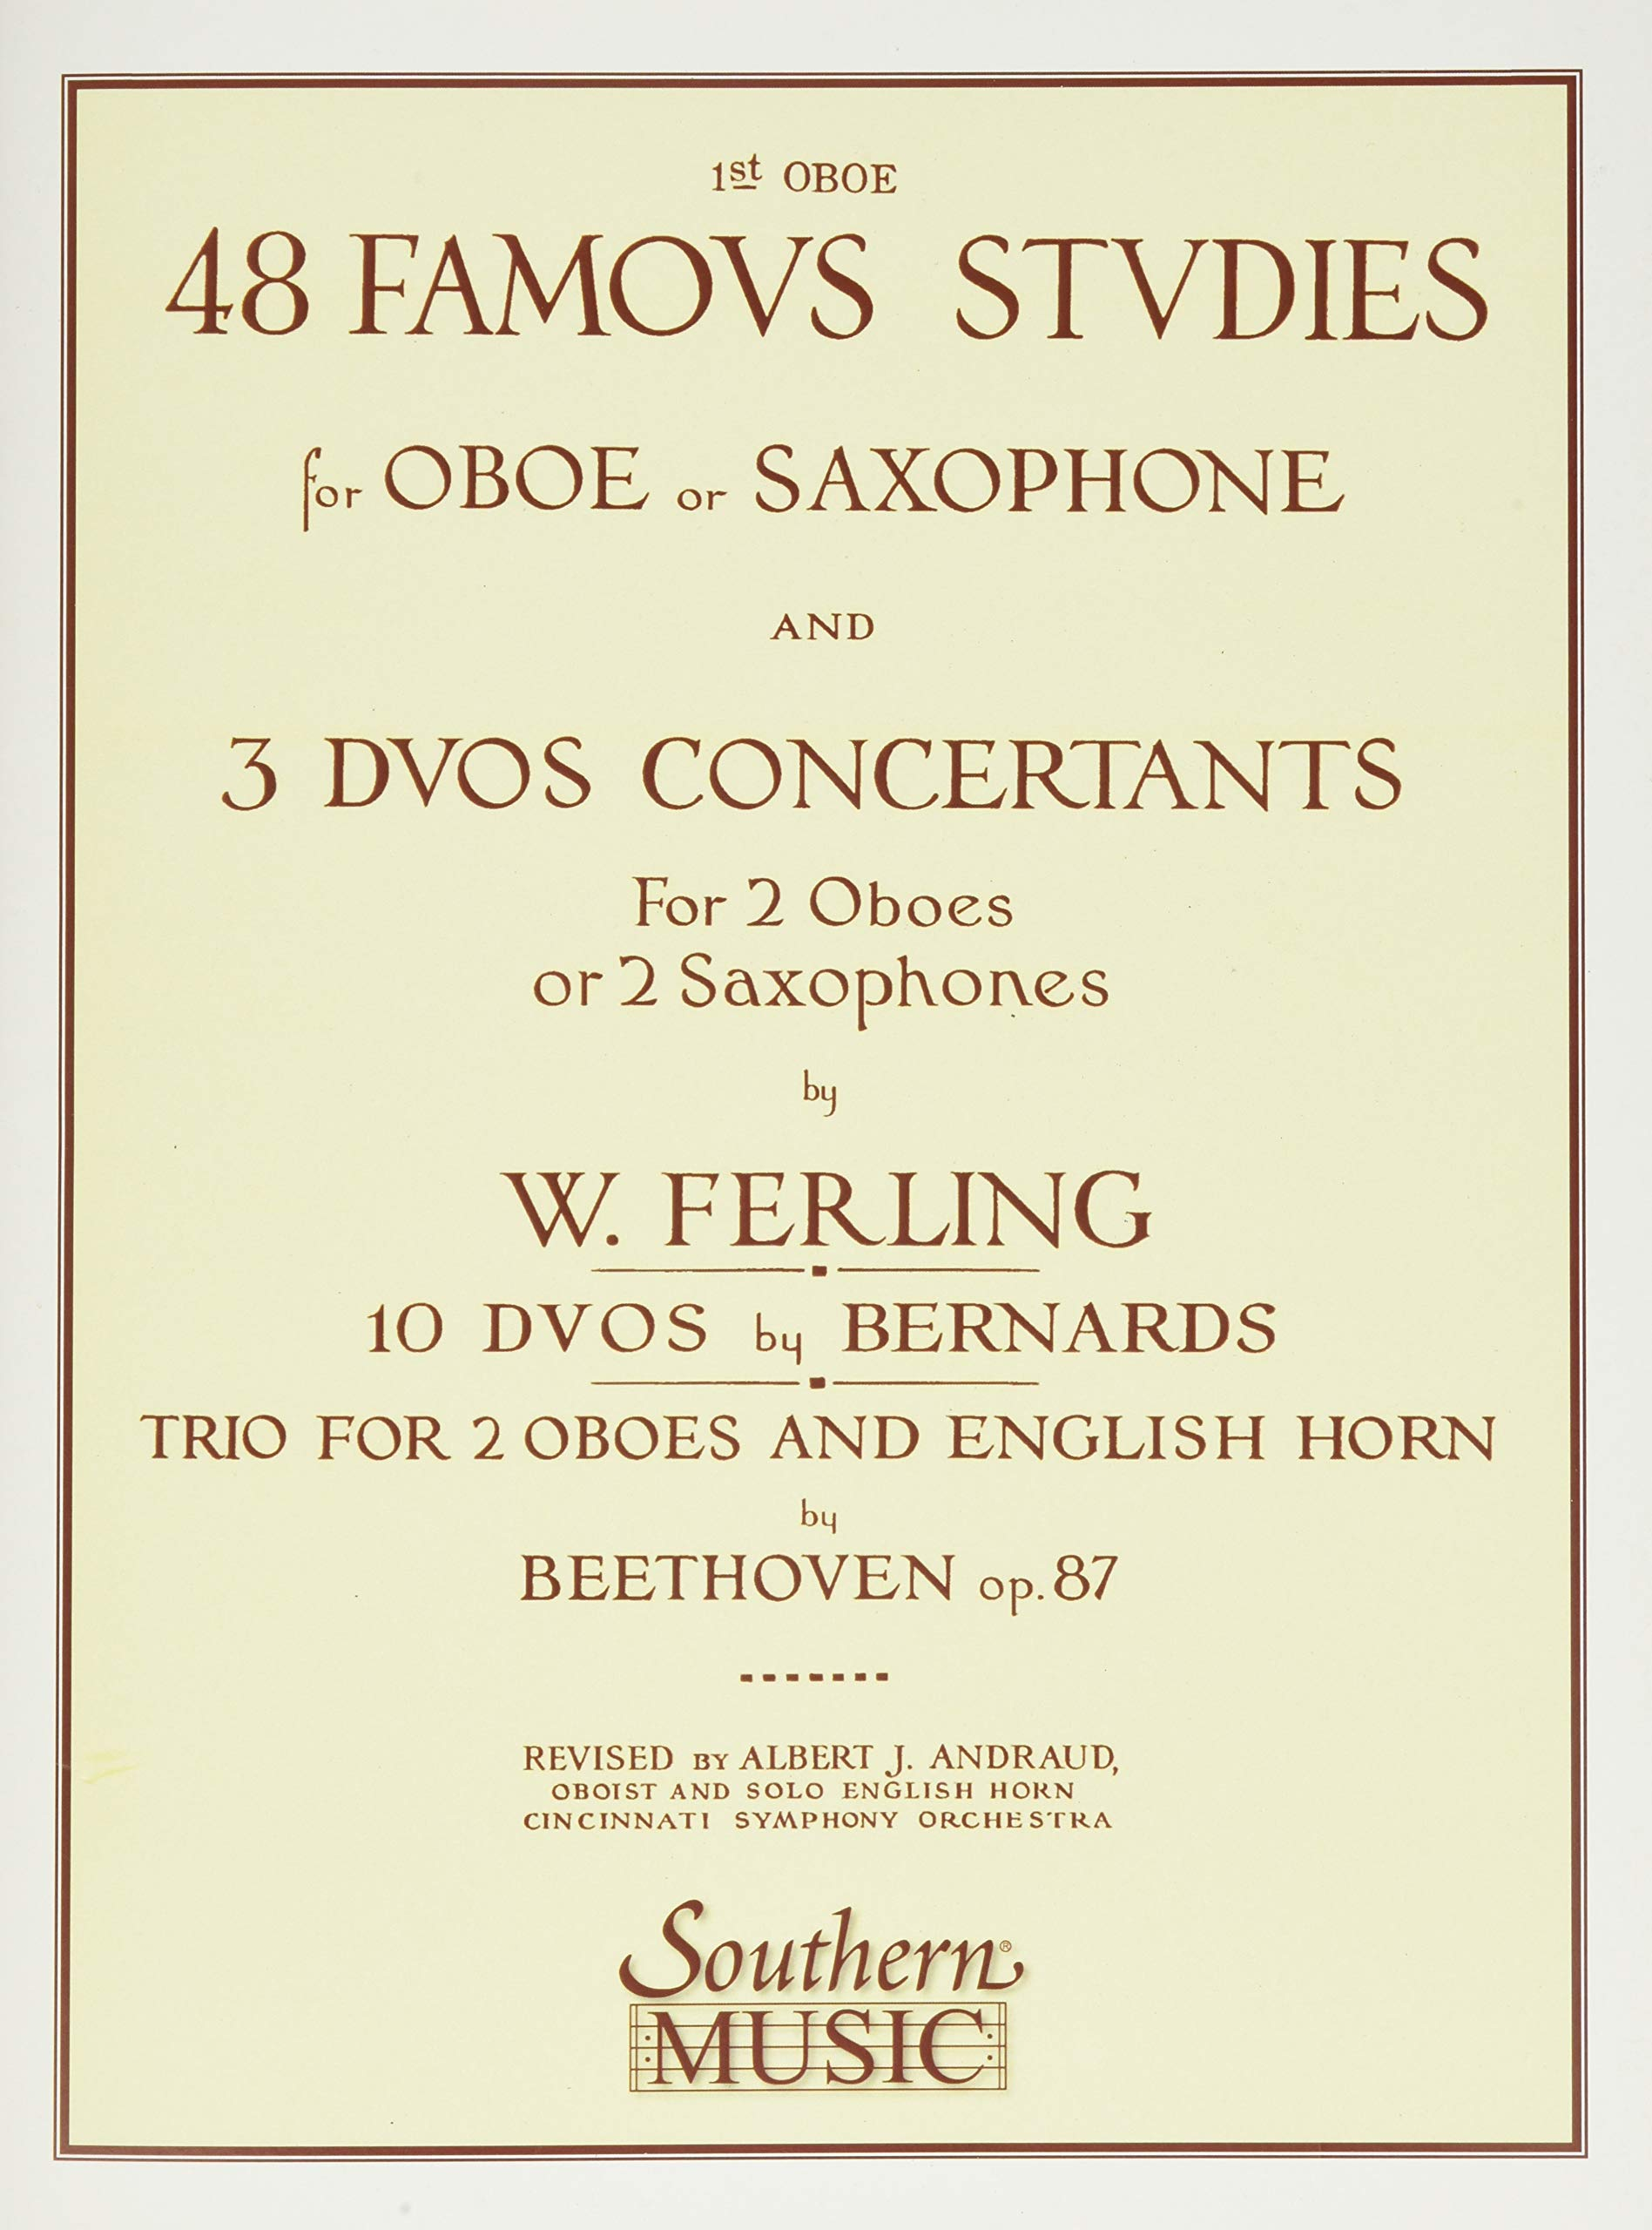 Franz Wilhelm Ferling Southern Musi 48 Famous Studies, 1st and 3rd Part Oboe